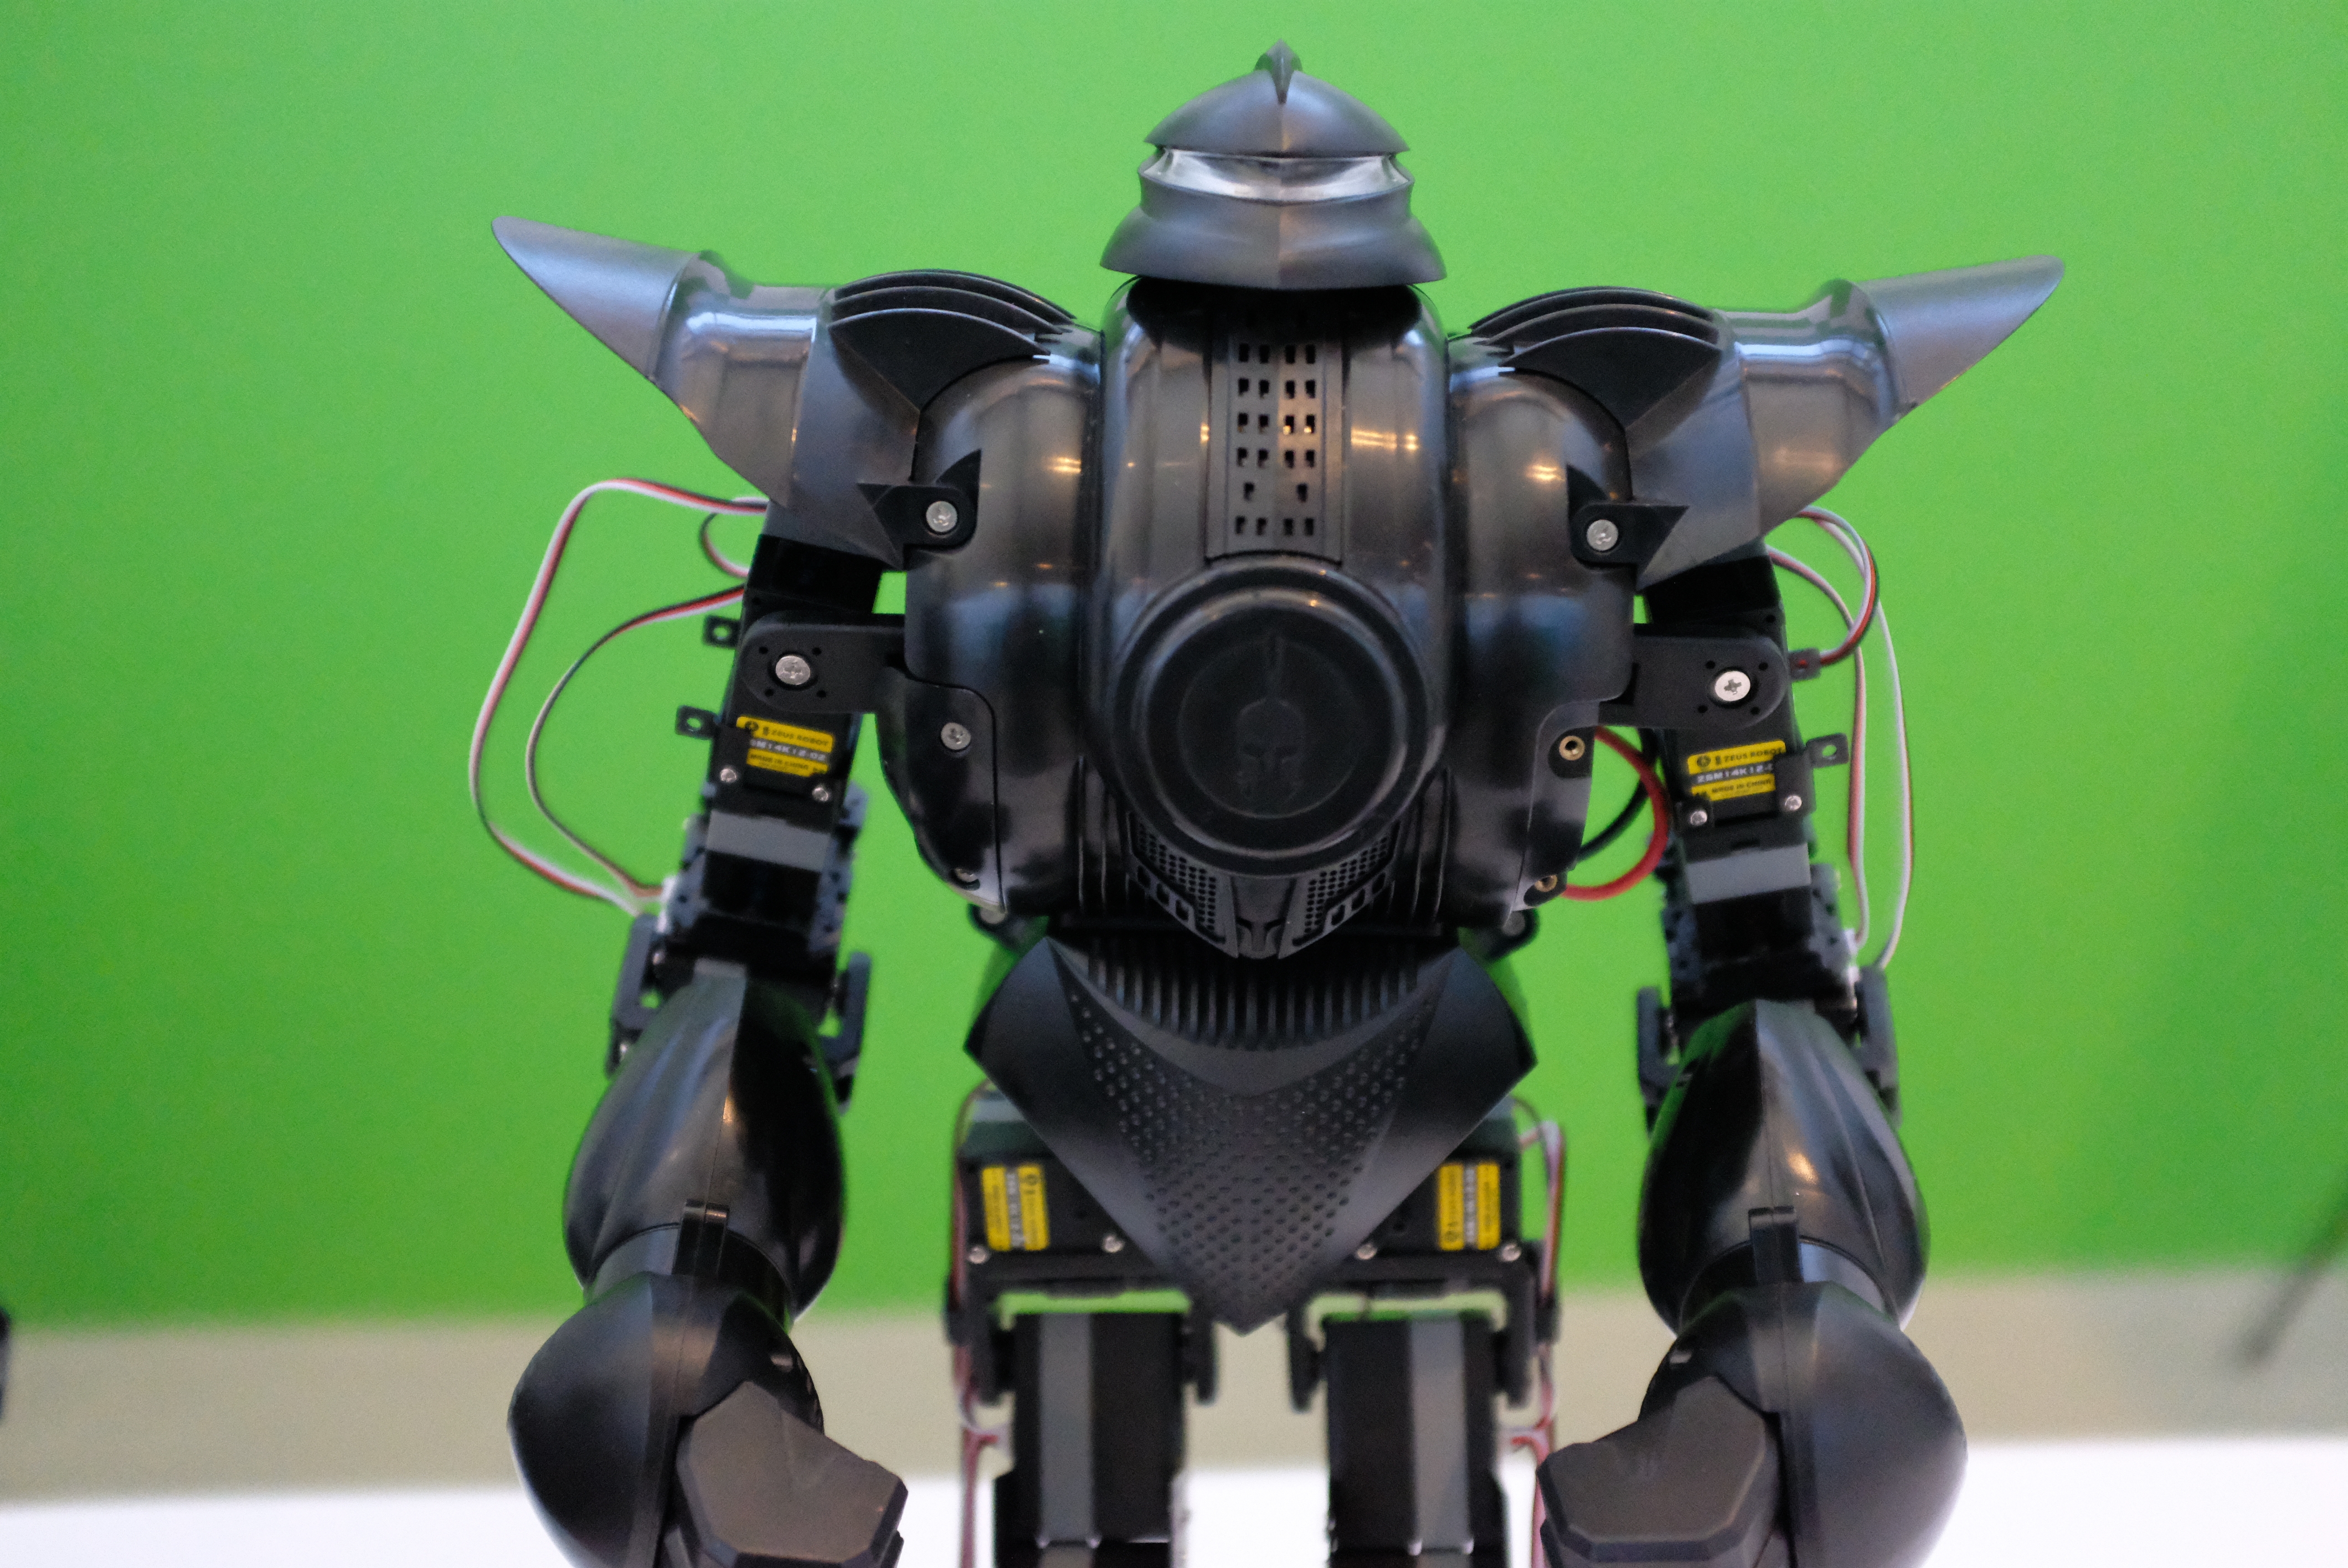 techcrunch.com - Brian Heater - This insane fighting robot can be yours now for $1,600